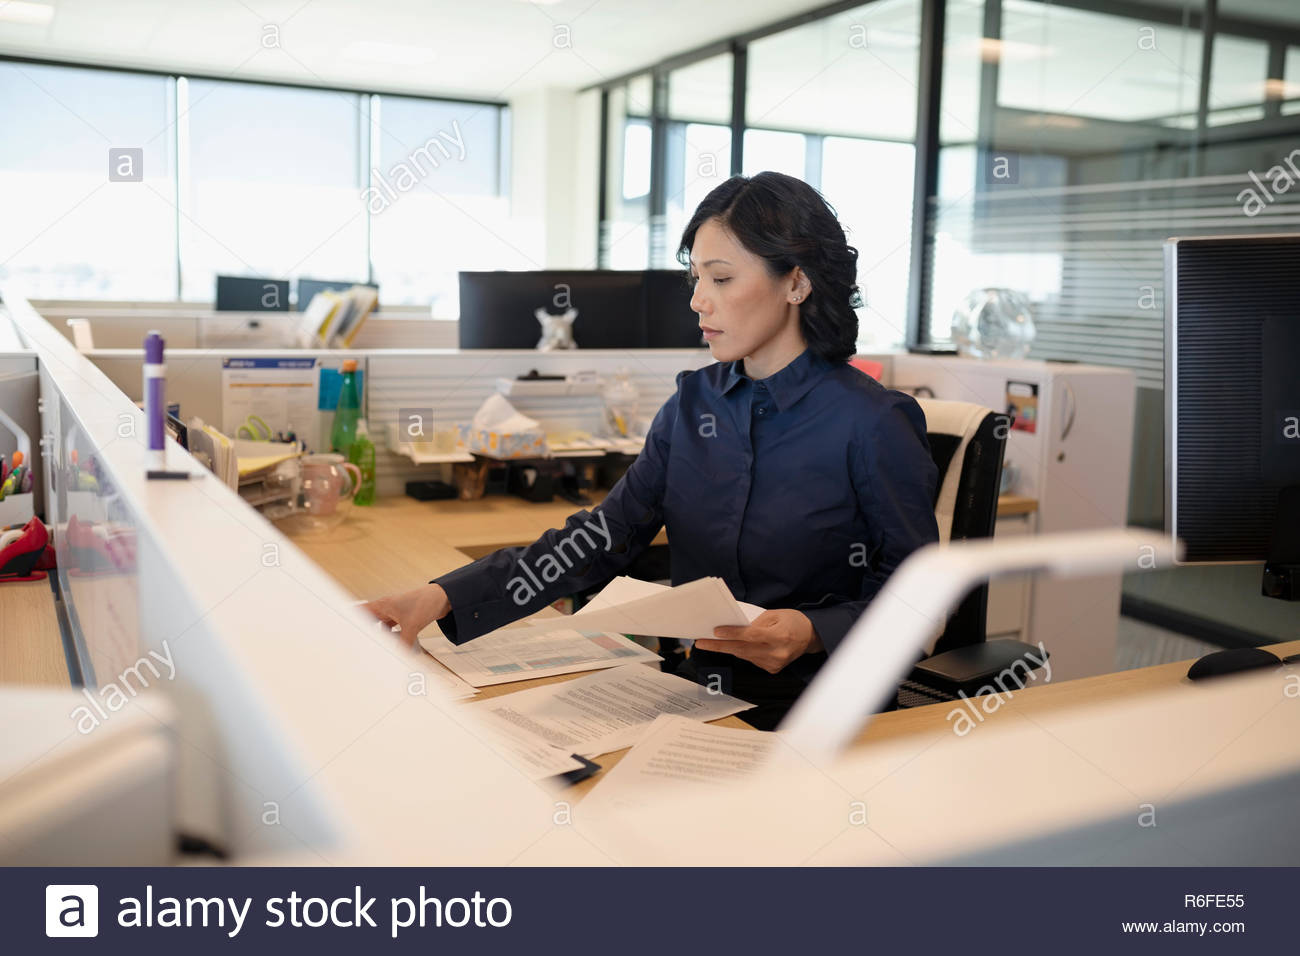 Businesswoman sorting paperwork in office cubicle - Stock Image